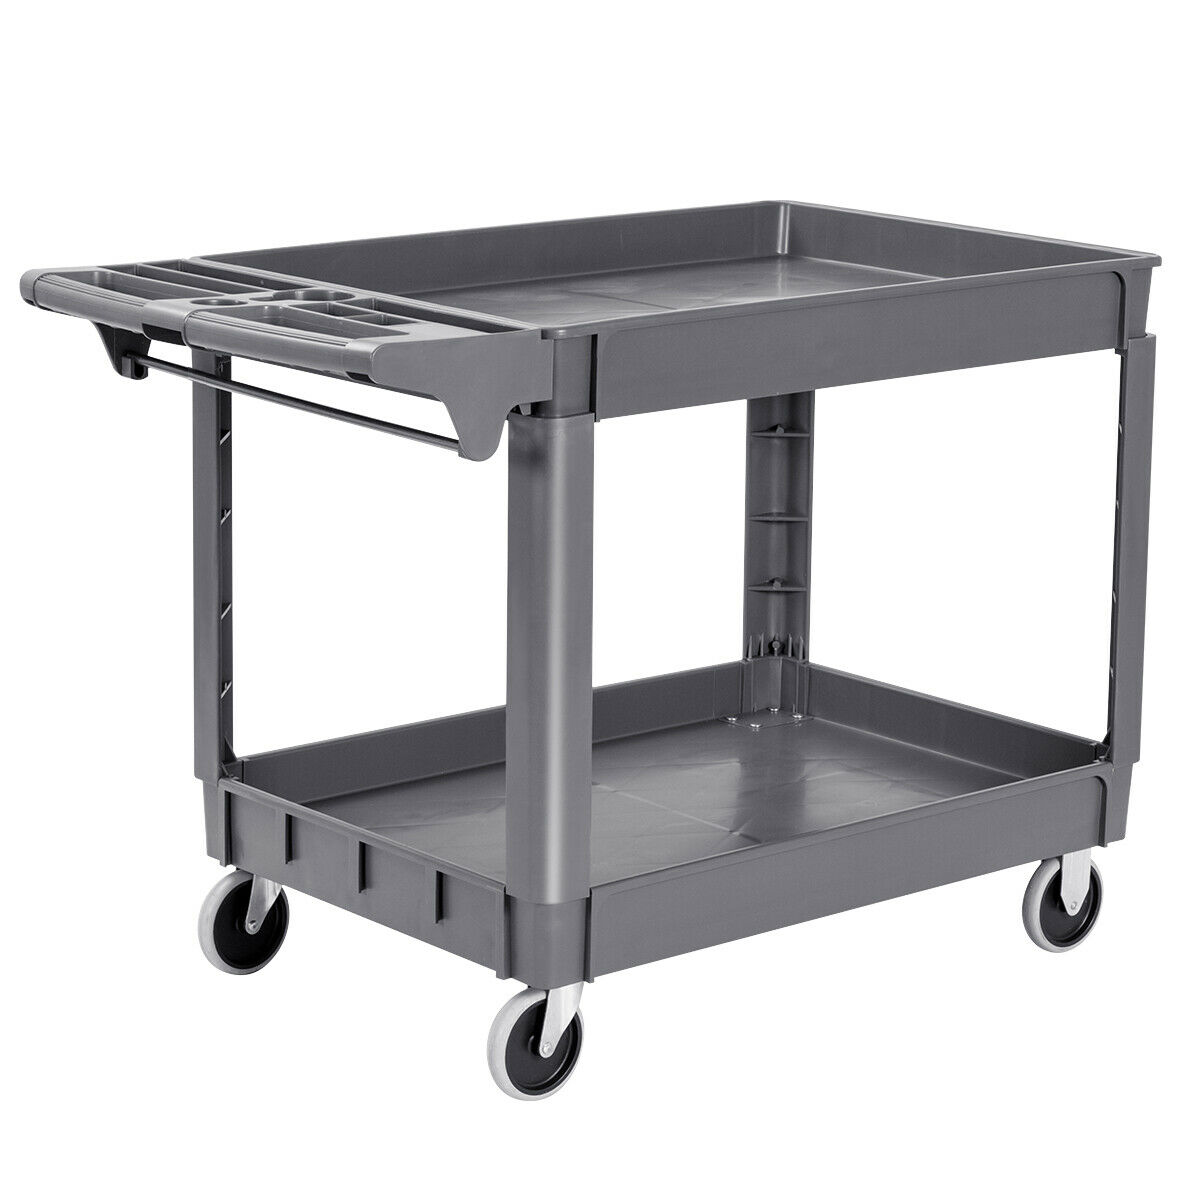 Costway Plastic Utility Service Cart 550 LBS Capacity 2 Shelves Rolling 46'' X 25'' X 33''